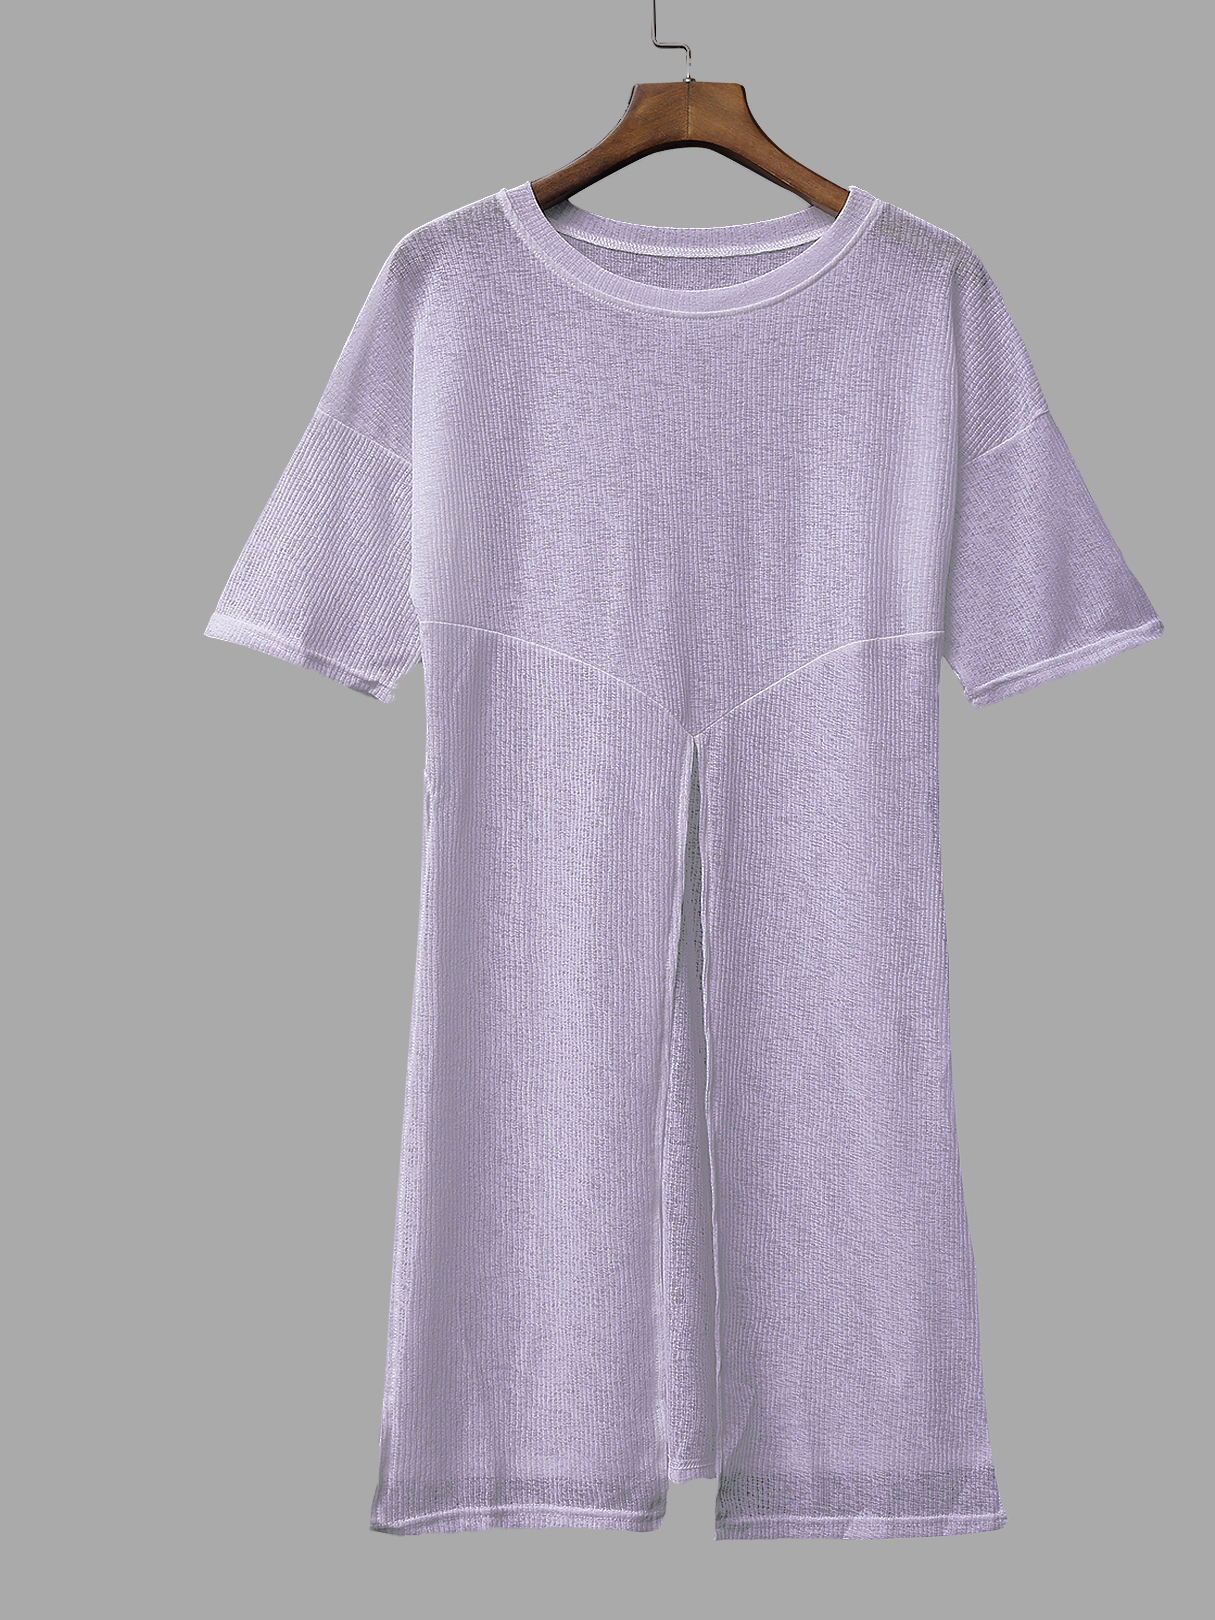 Knit Round Neck Splited Hem Top in Grey sitemap 53 xml